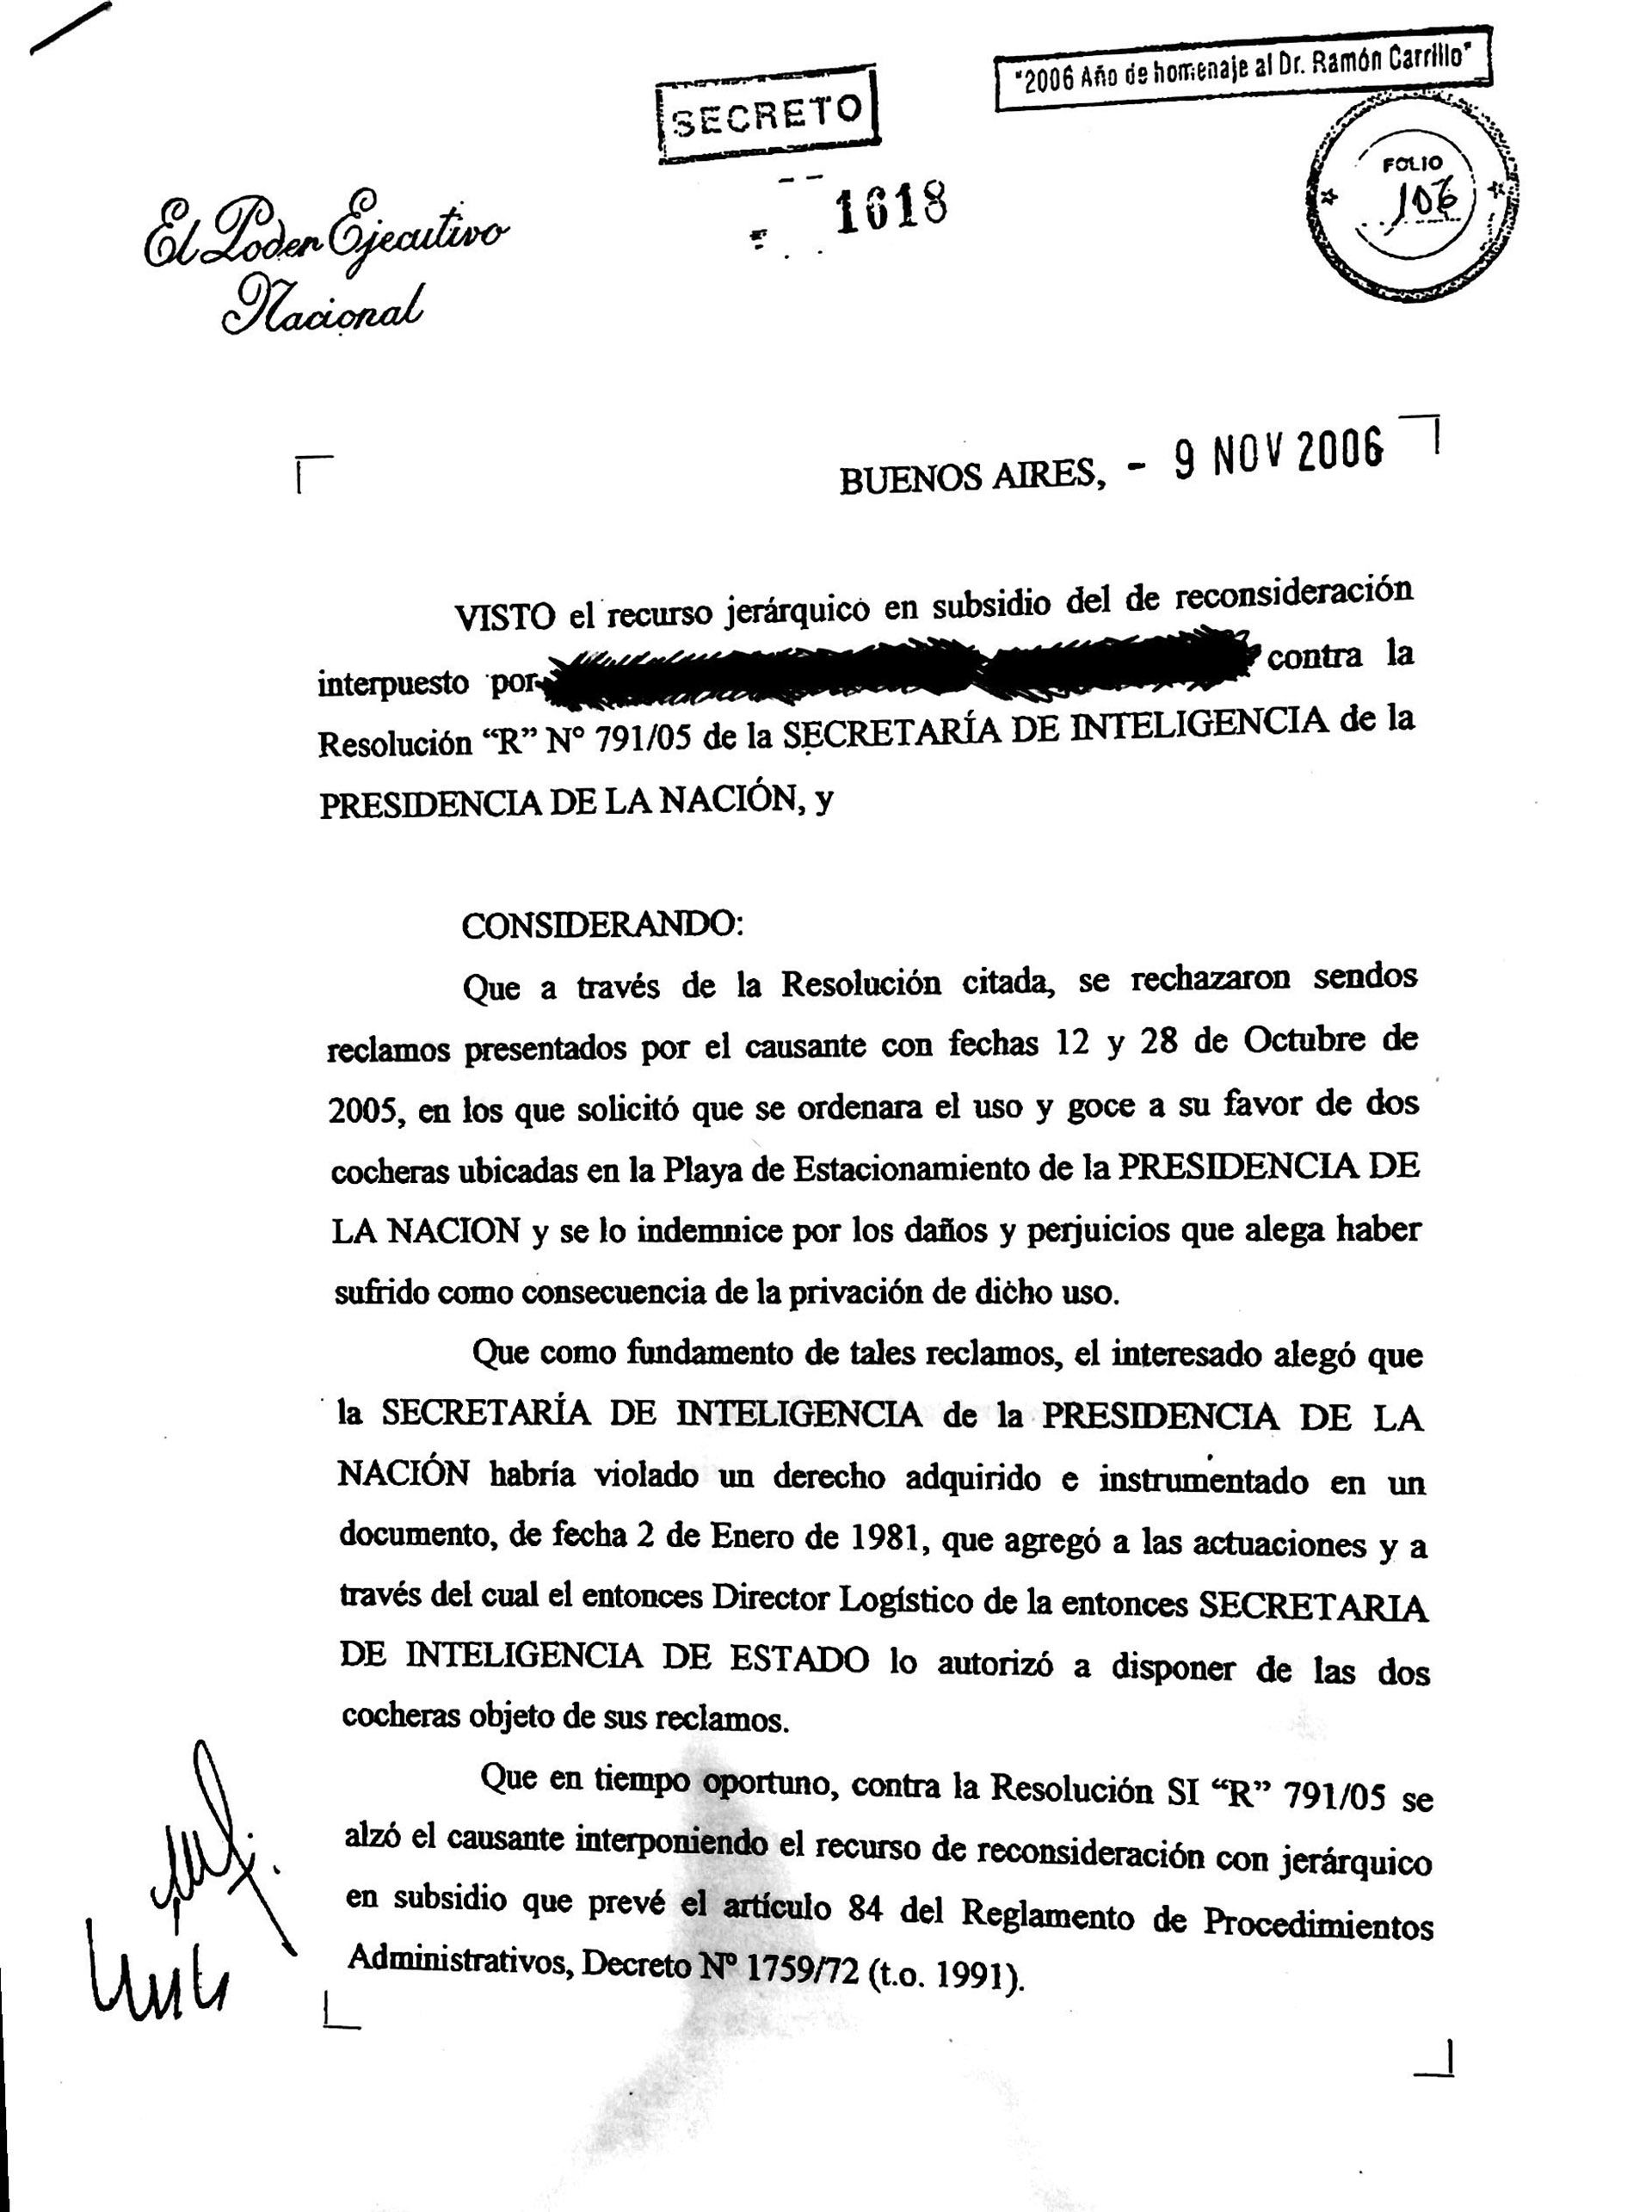 Decretos Secretos en Democracia